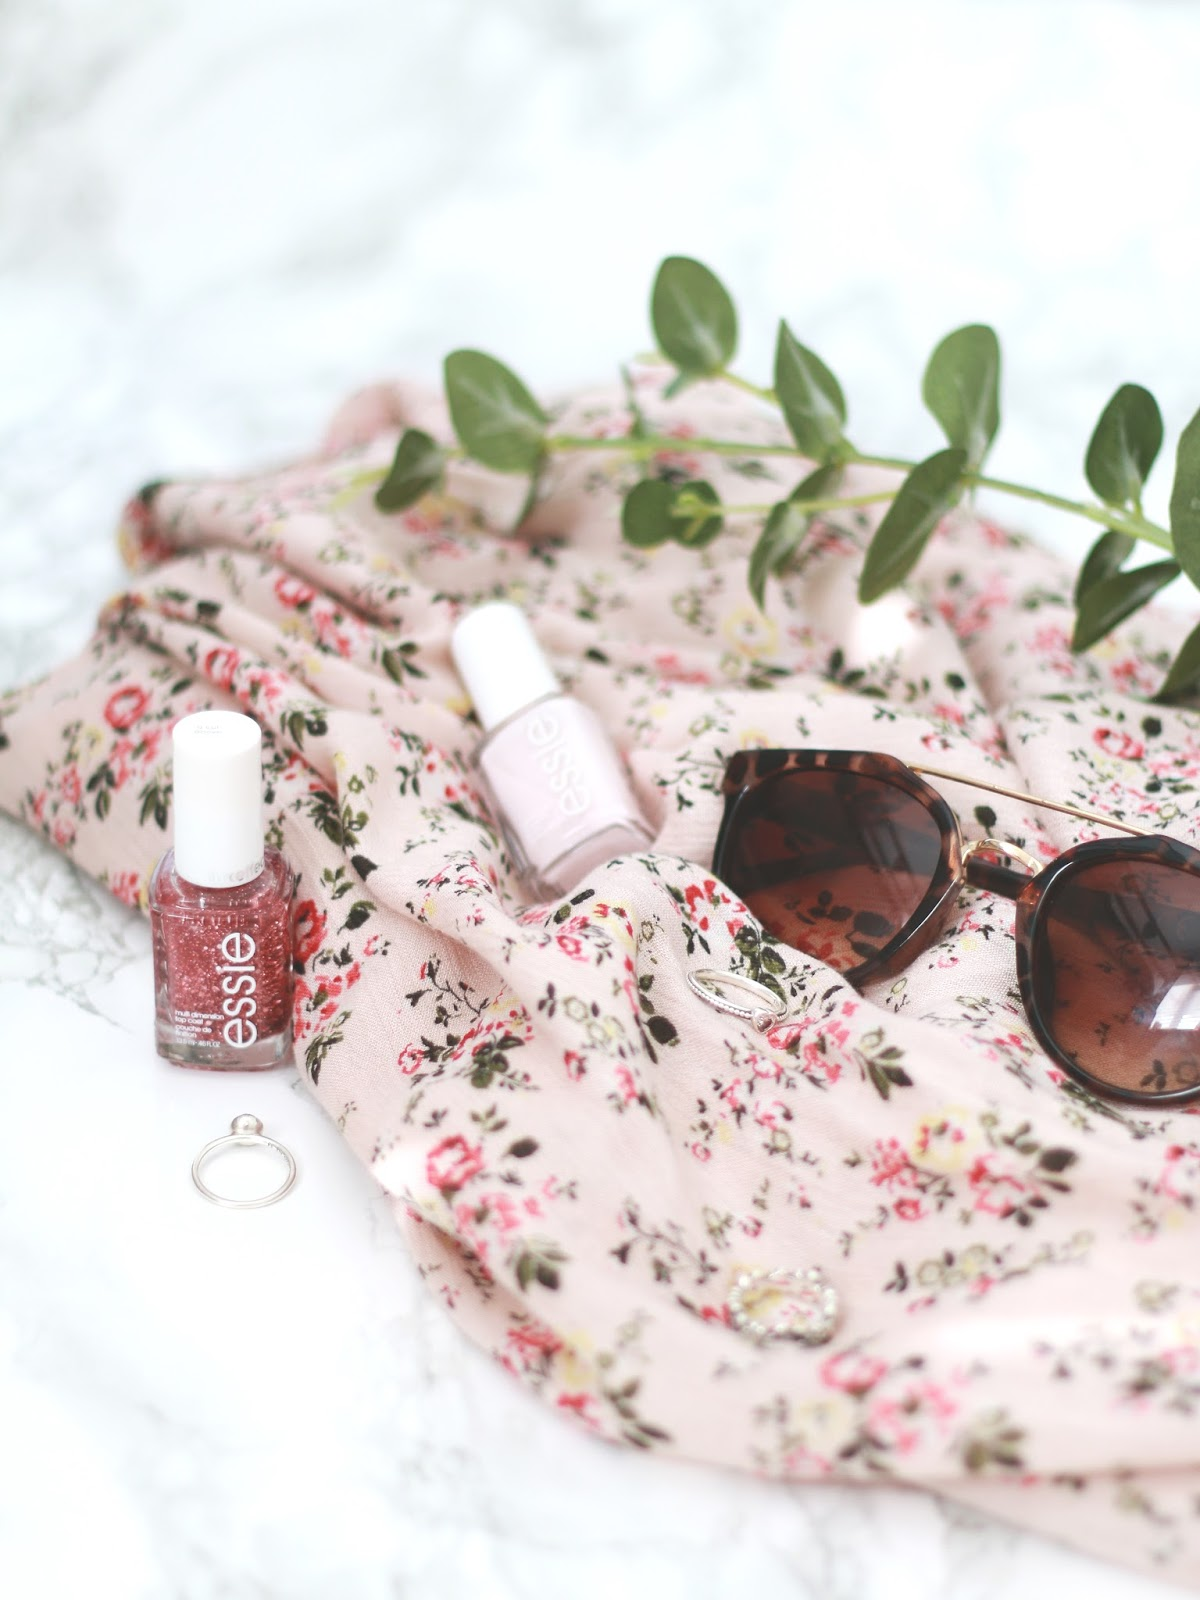 forever september, 10 things to do this summer, summer activities, makeup, beauty, fashion, blogger, the girl gang, blogging gals, essie nail polish, summer plans, seasonal, spring,